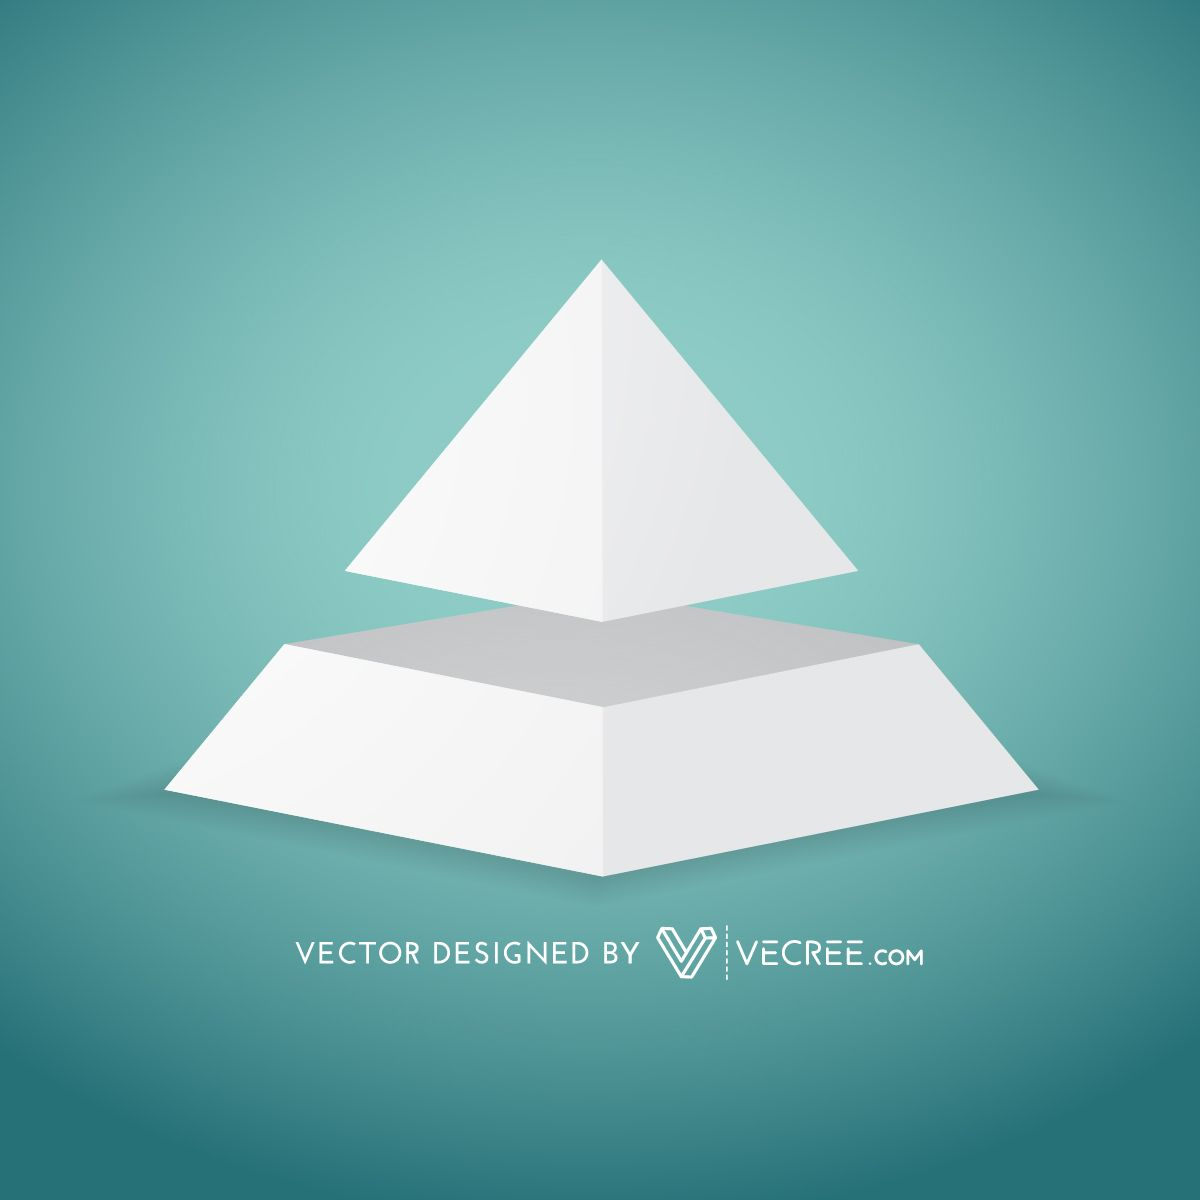 3d grey pyramid diagram template vector download image user ccuart Images